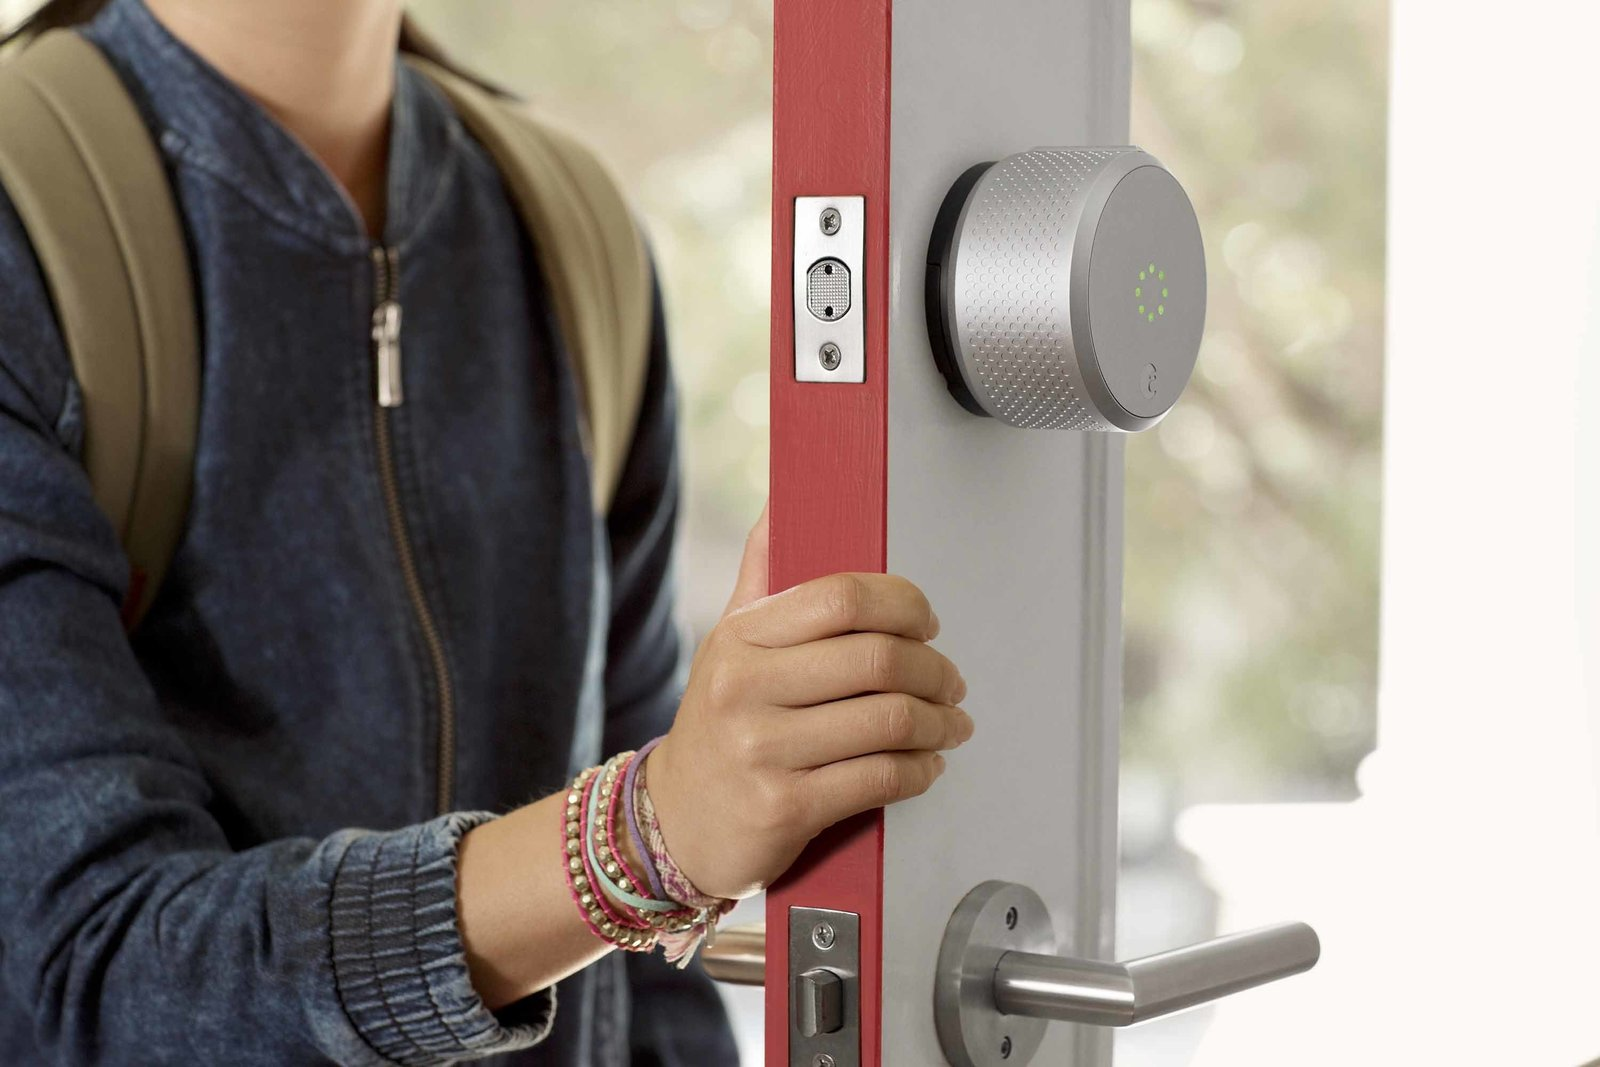 Tech enthusiasts will recognize August Smart Lock as the DIY security device that allows homeowners to create virtual keys for guests to come and go. Design seekers will notice the second-generation lock, soon to ship, has a more tactile, intuitive form profile that resembles a traditional knob. The latest model is also Apple Homekit enabled.  Buzz-Worthy Smart Home Innovations Coming Out of CES 2016 by Luke Hopping